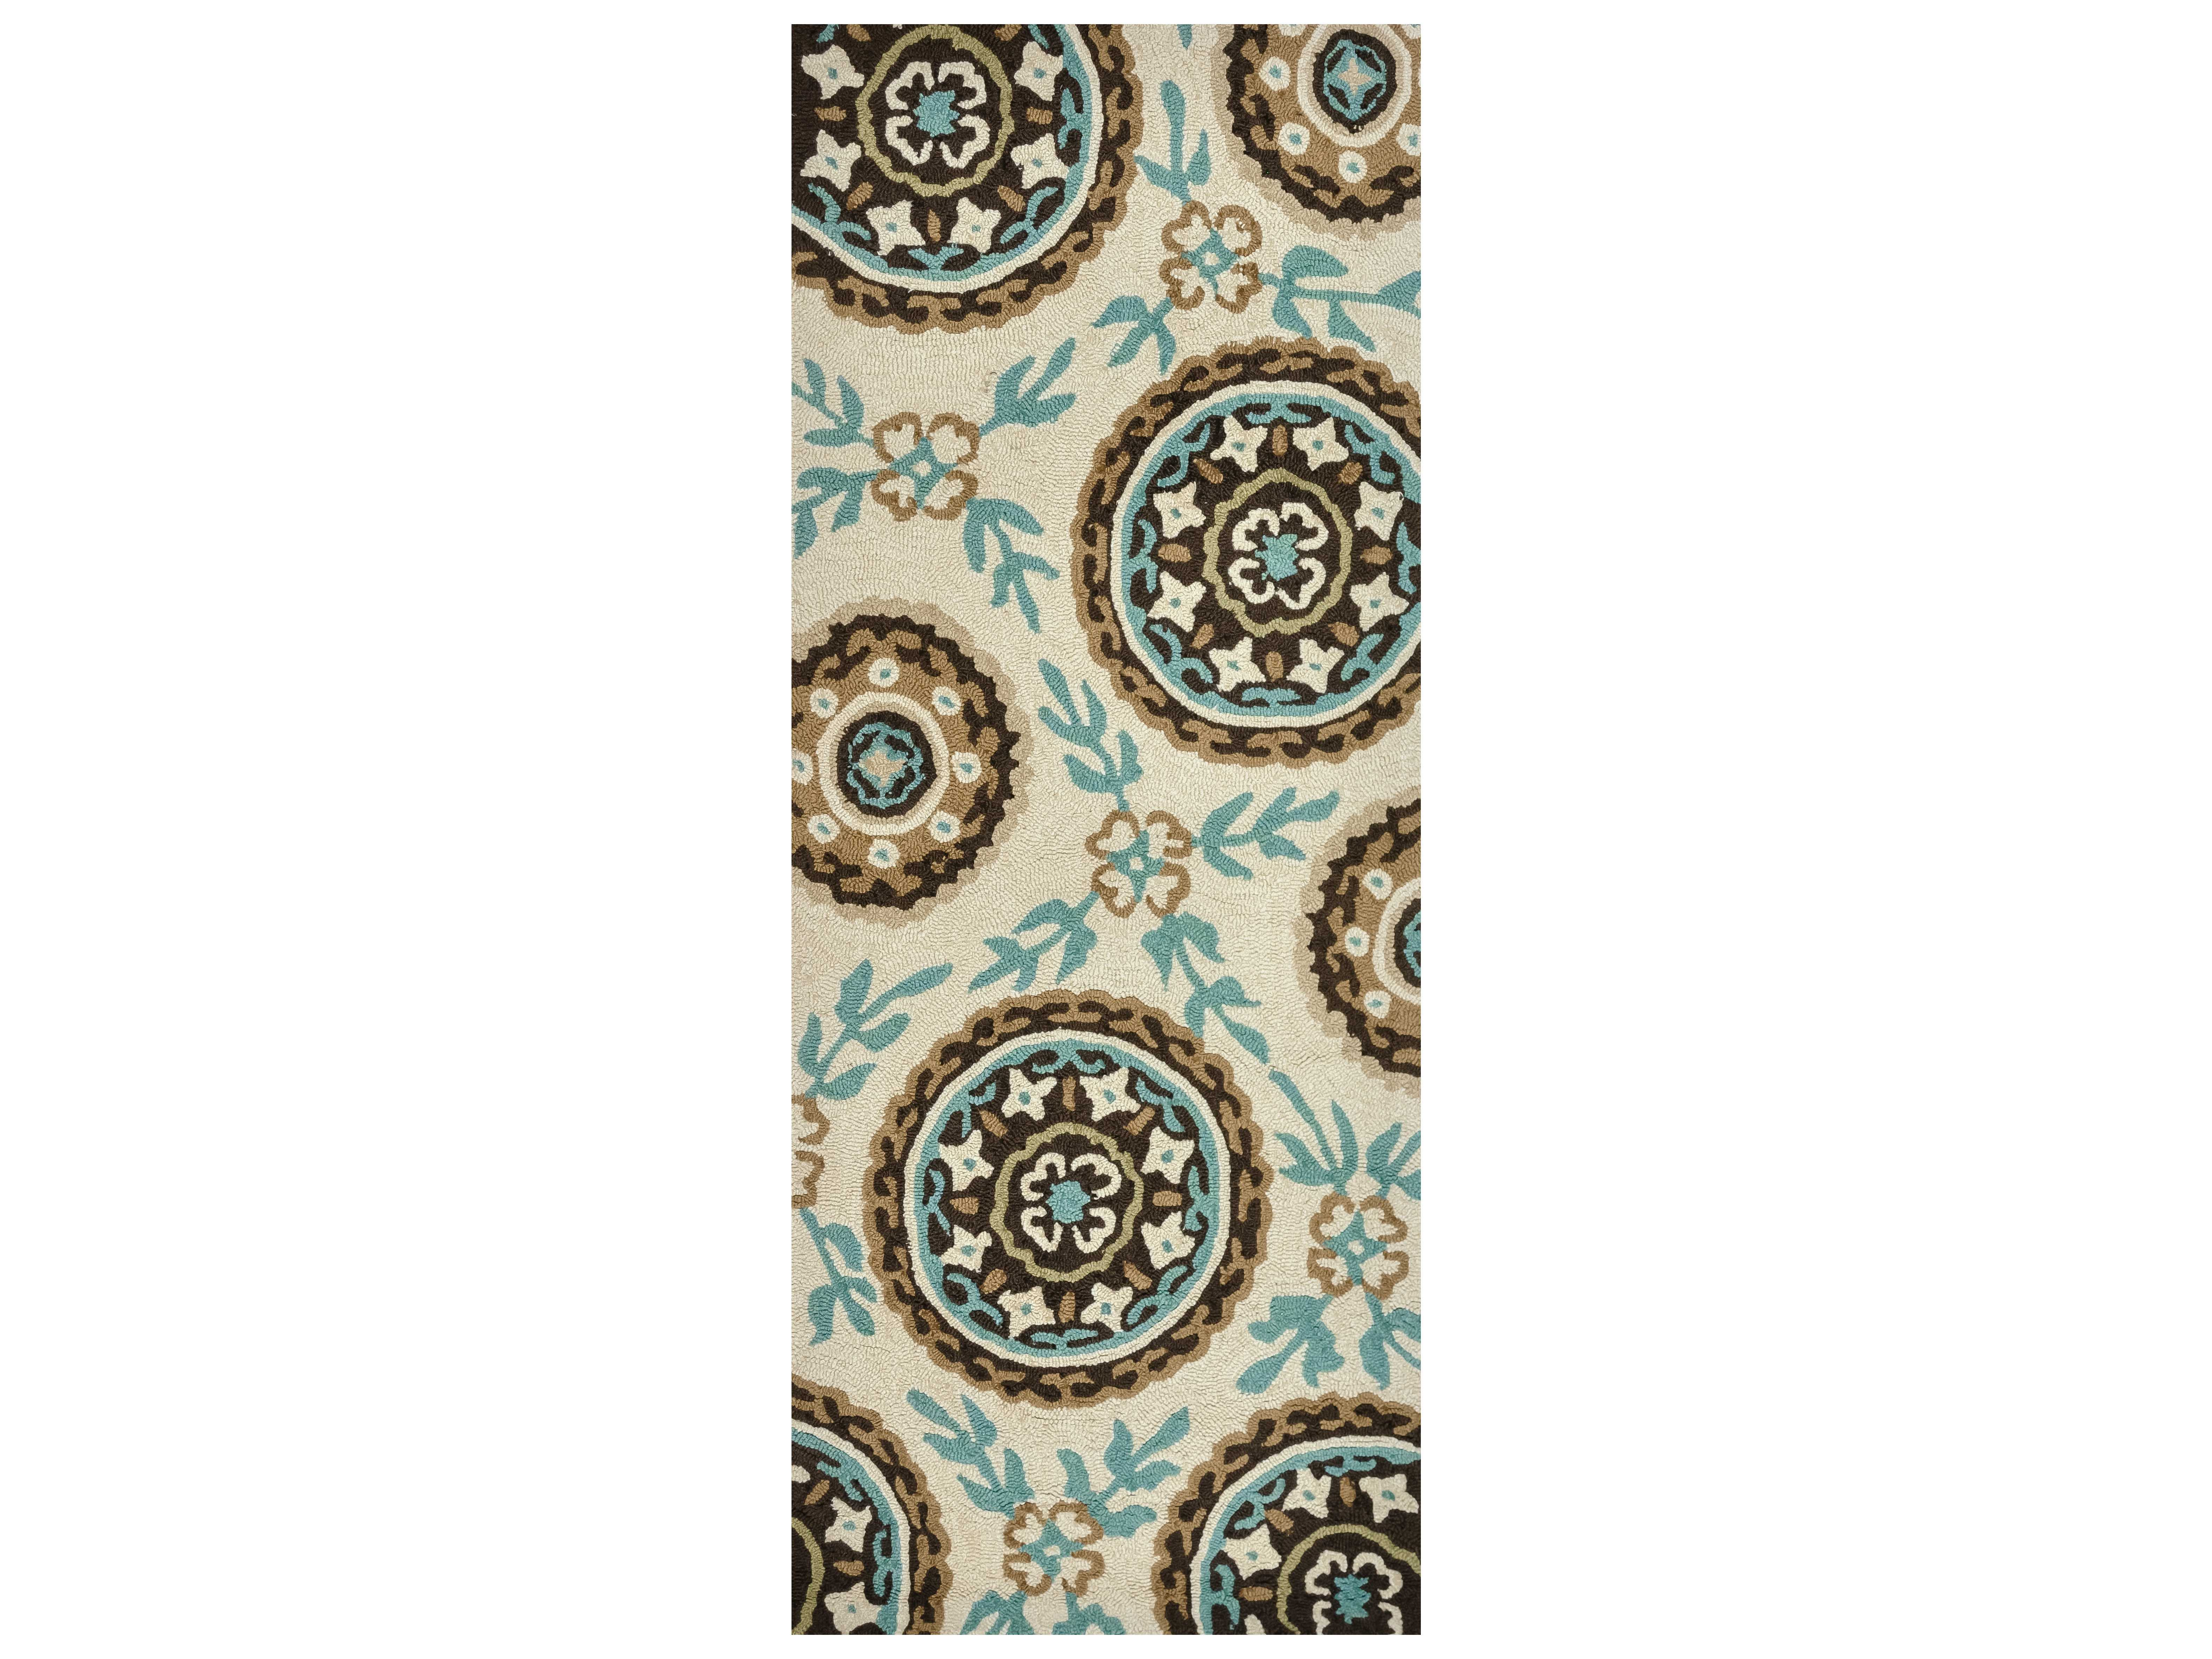 Loloi Rugs Summerton Srs08 Rectangular Ivory Teal Area